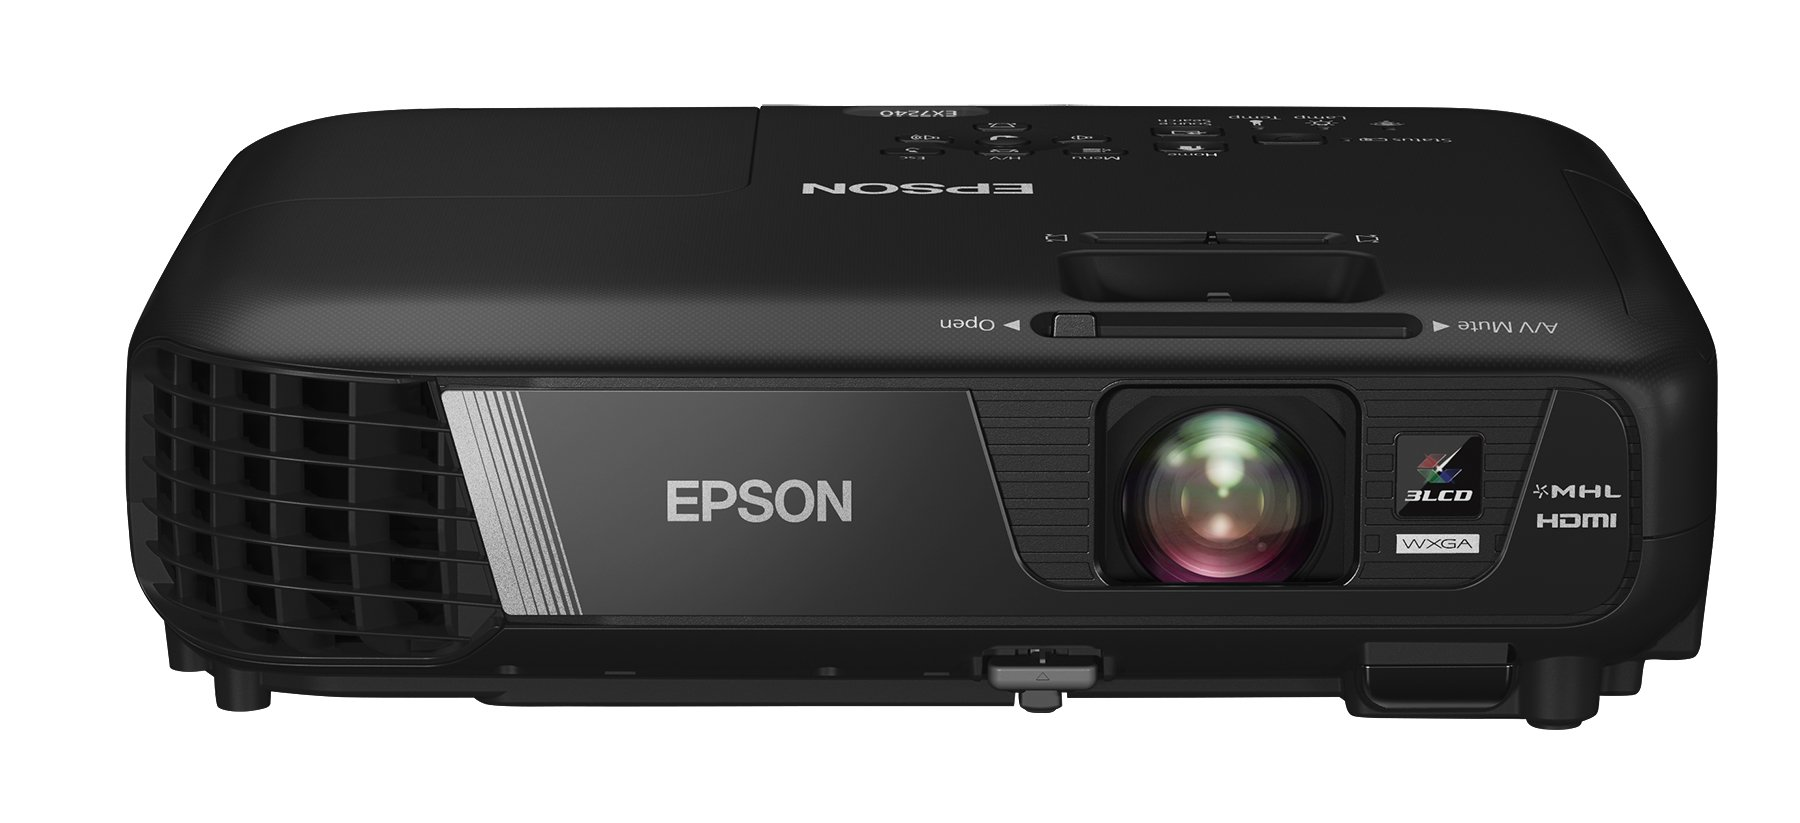 Epson EX7240 Pro WXGA 3LCD Projector Pro Wireless, 3200 Lumens Color Brightness by Epson (Image #3)